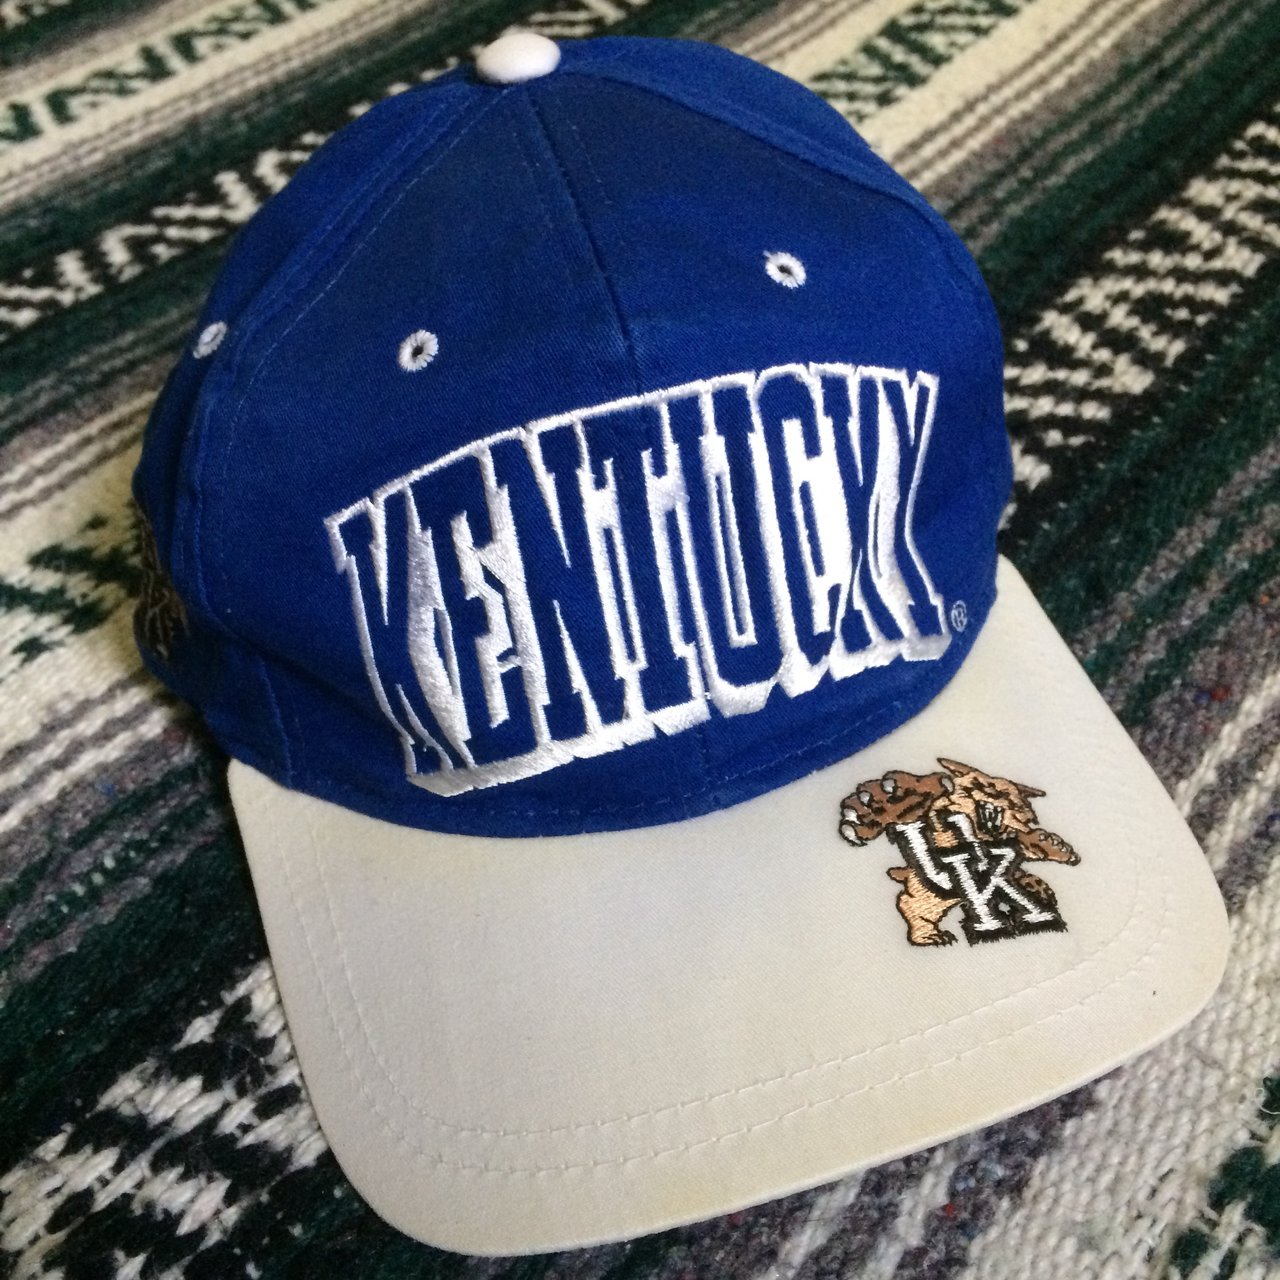 5e6e754a7a3 Vintage 90s Kentucky Wildcats snapback hat. Made by Cap Boy. - Depop